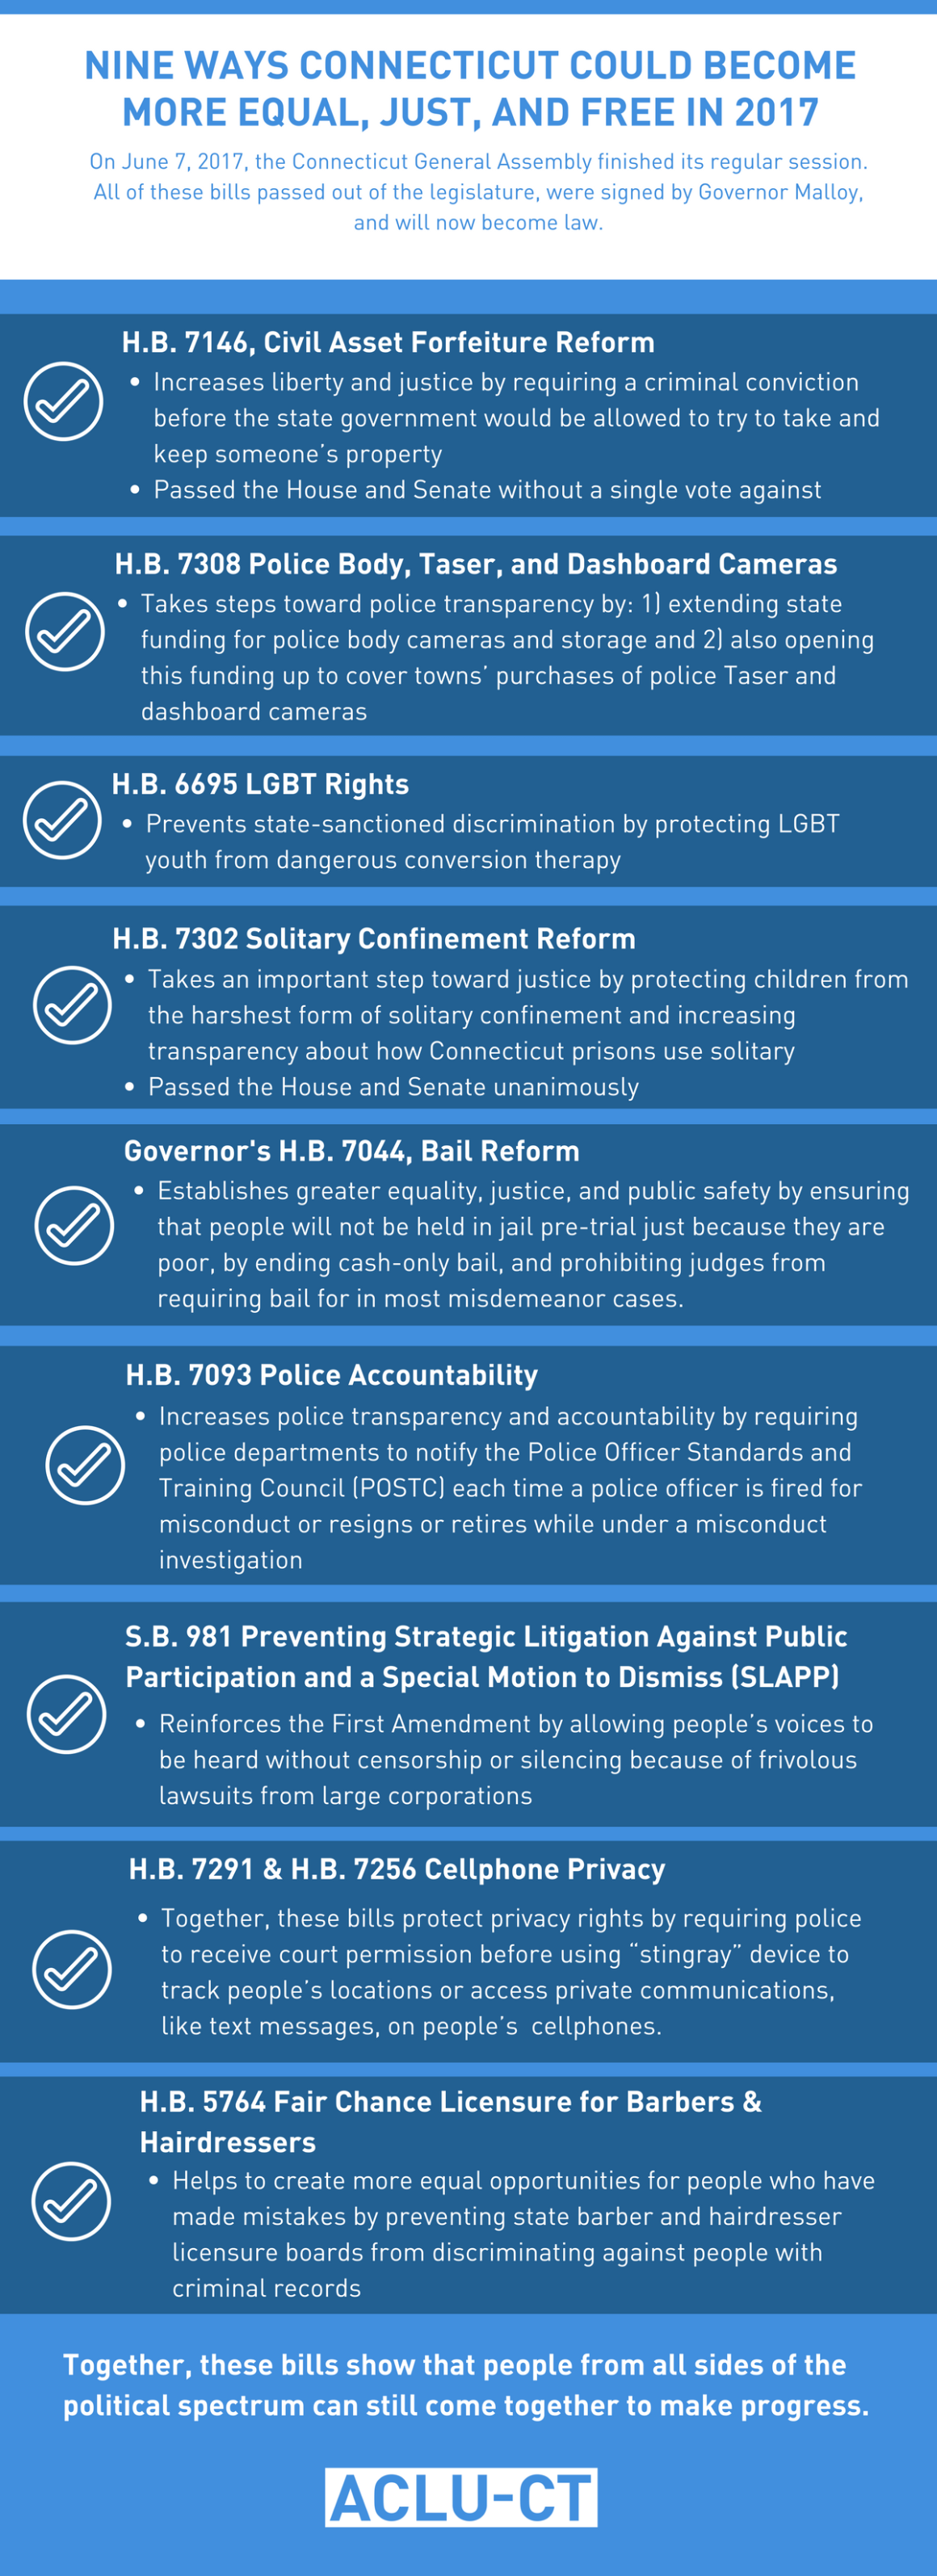 Legislative wrap-up for ACLU-CT 2017 Connecticut General Assembly legislative session. New laws include: civil asset forfeiture policy body camera LGBT conversion therapy solitary confinement bail reform SLAPP cellphone privacy barber hairdresser license